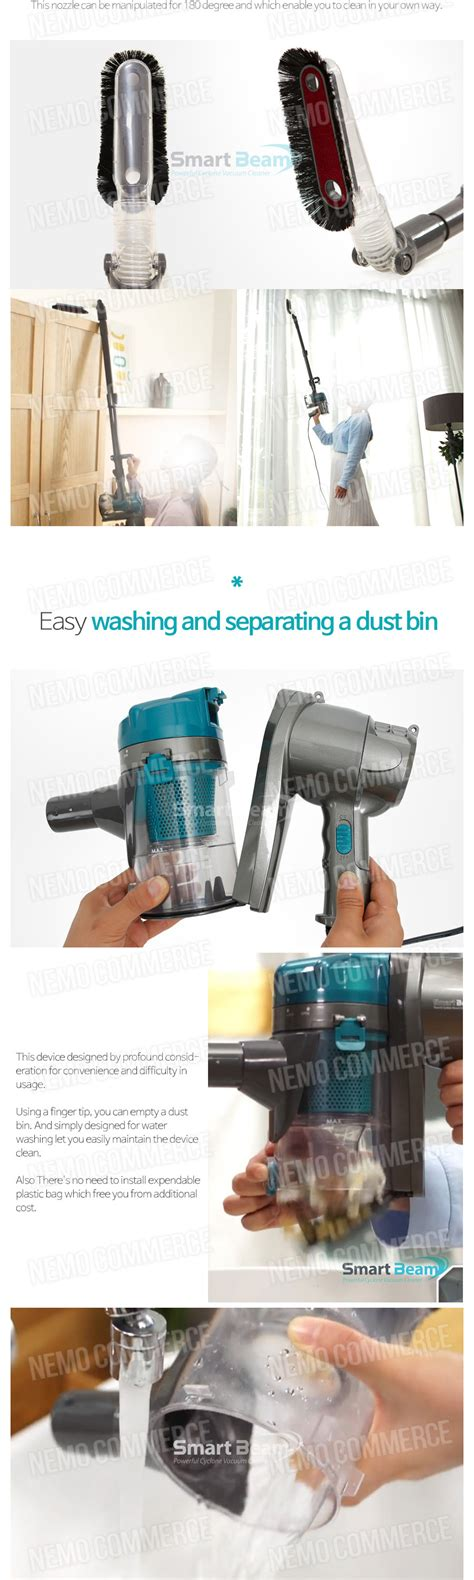 Style Powerful Portable Cyclone Vacuum Cleaner Penyedot Debu wintech powerful cyclone vacuum cleaner smart beam win 4001wc handheld dyson style hepa